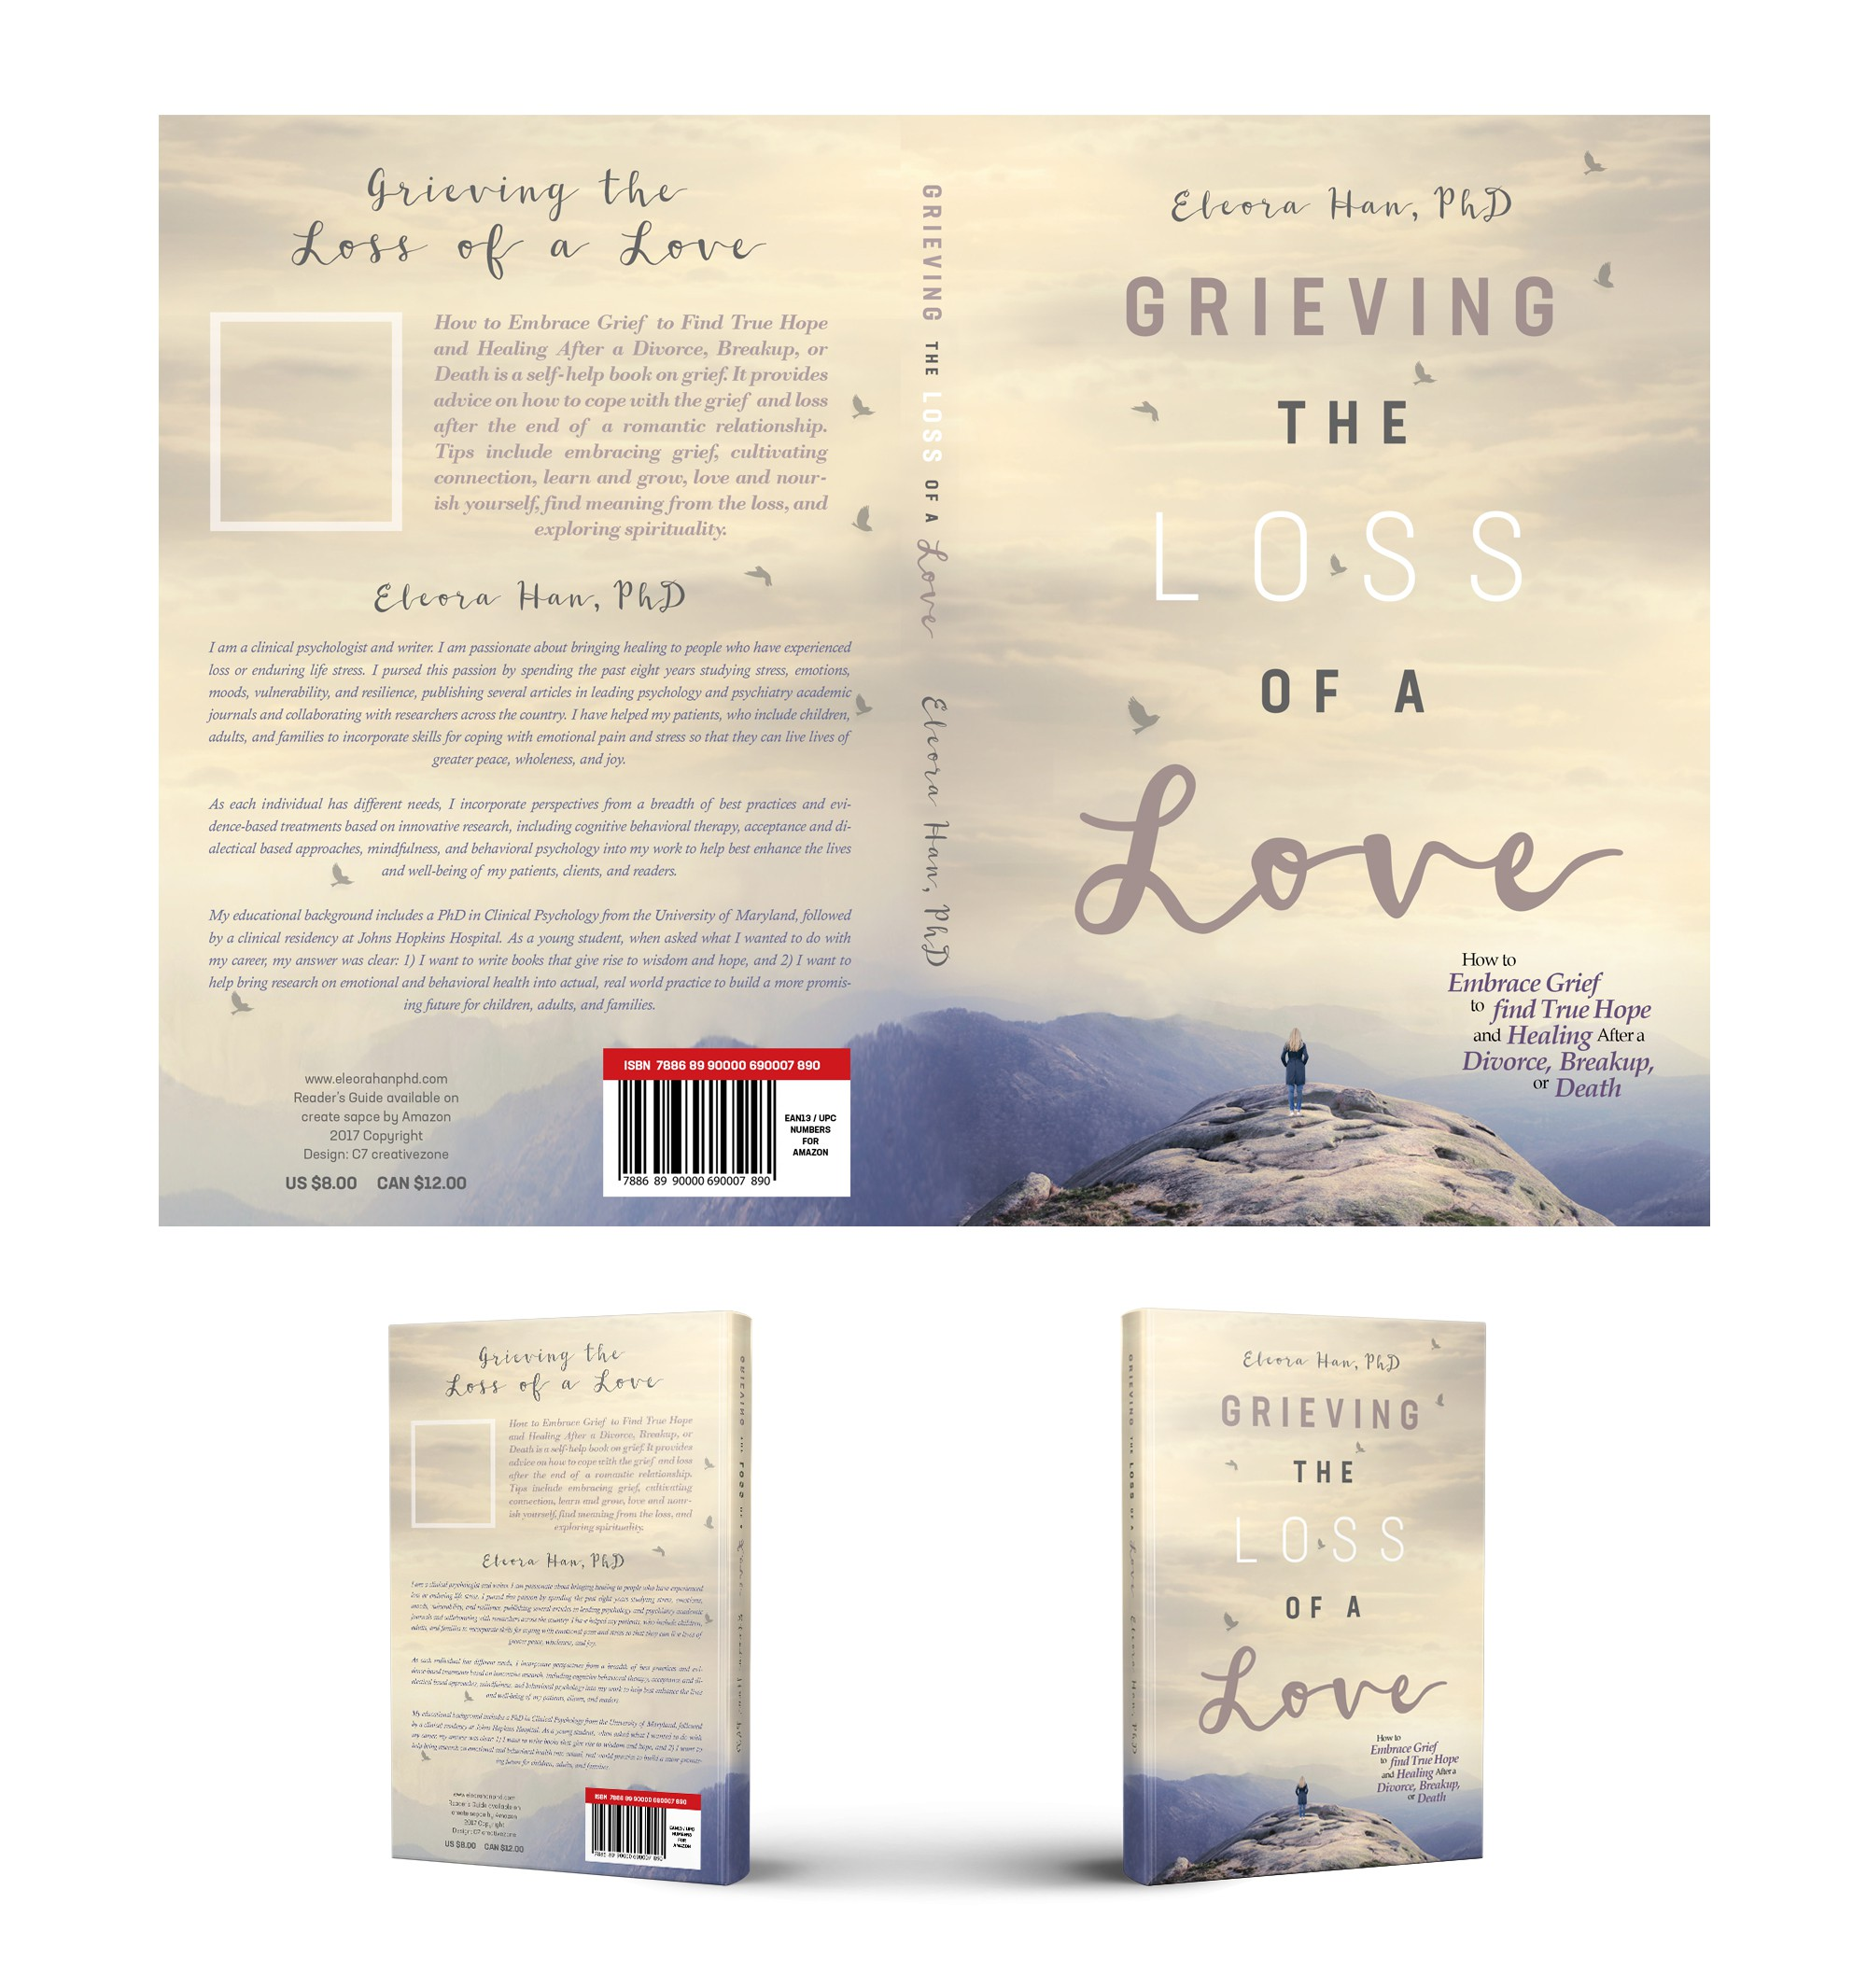 Create a Cover for a Book on Healing from Grief After Love and Loss